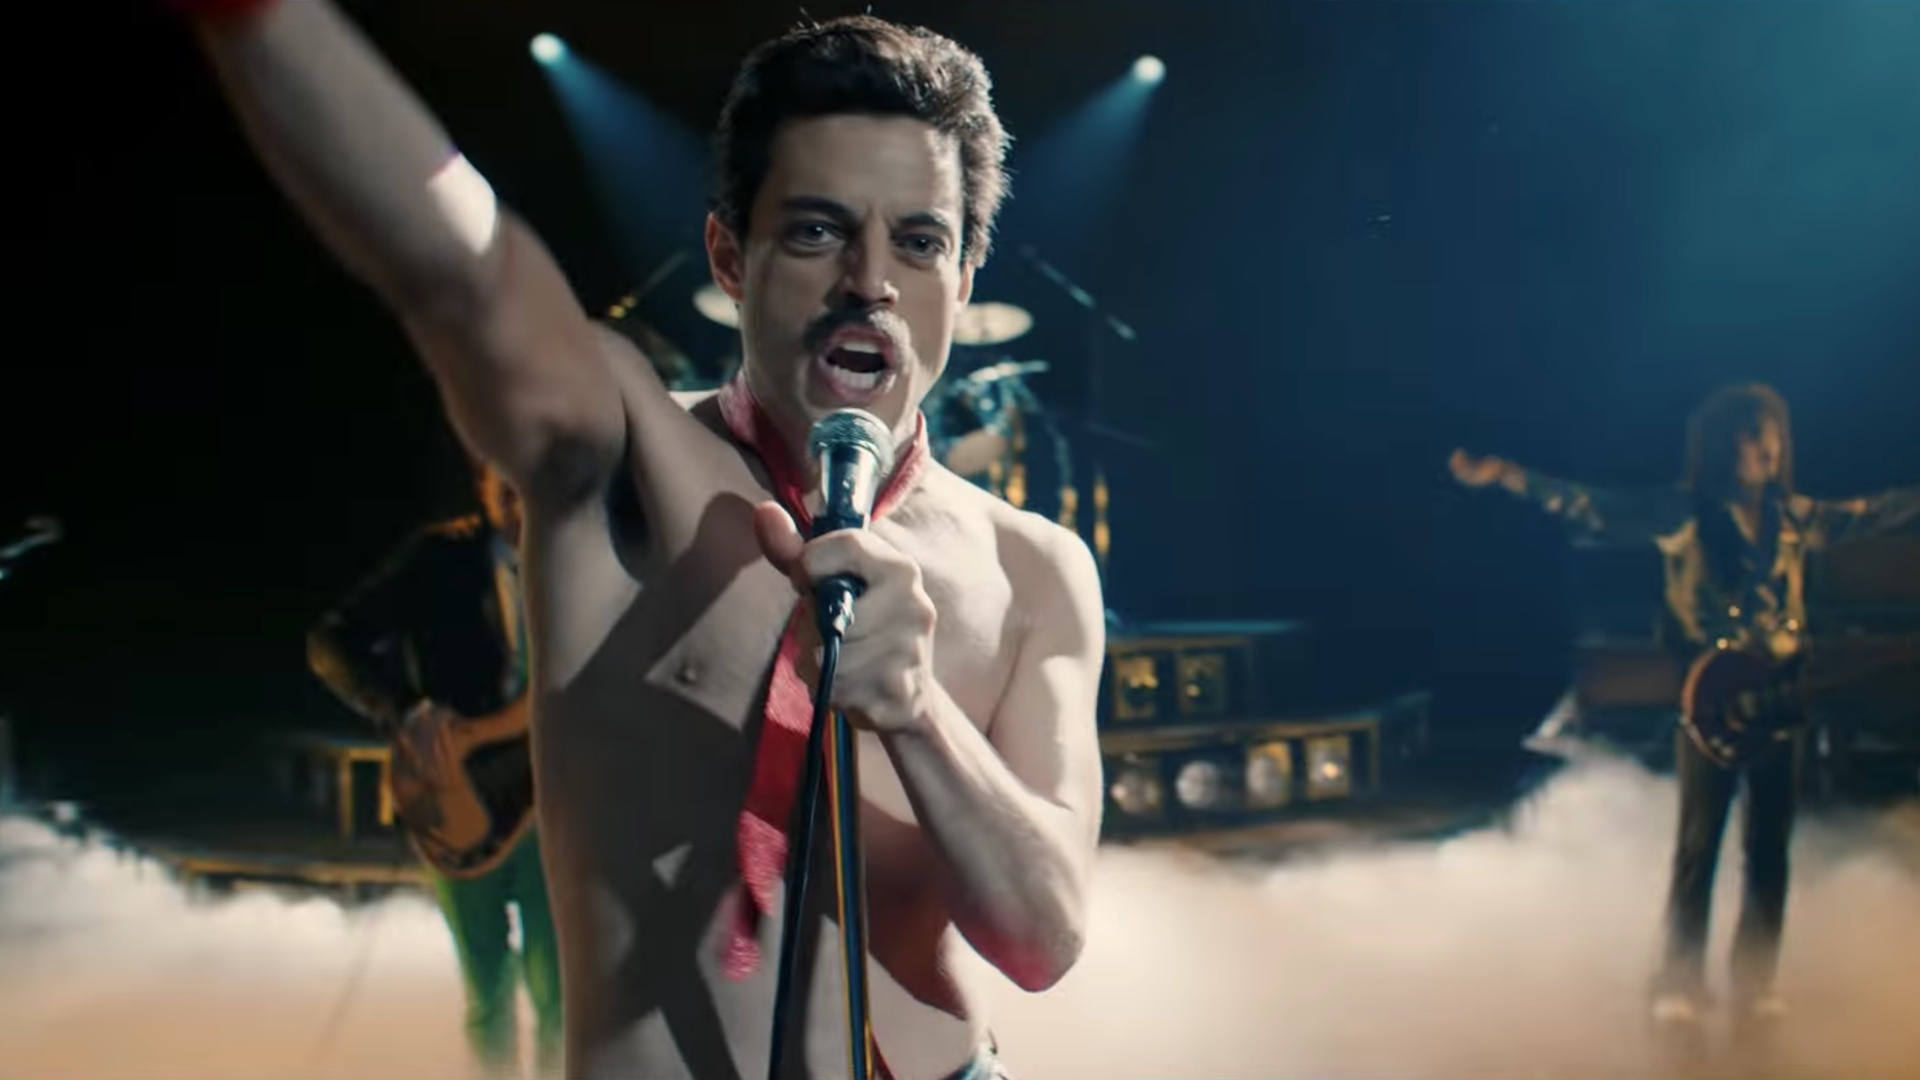 Filmtips december, review van Bohemian rhapsody!